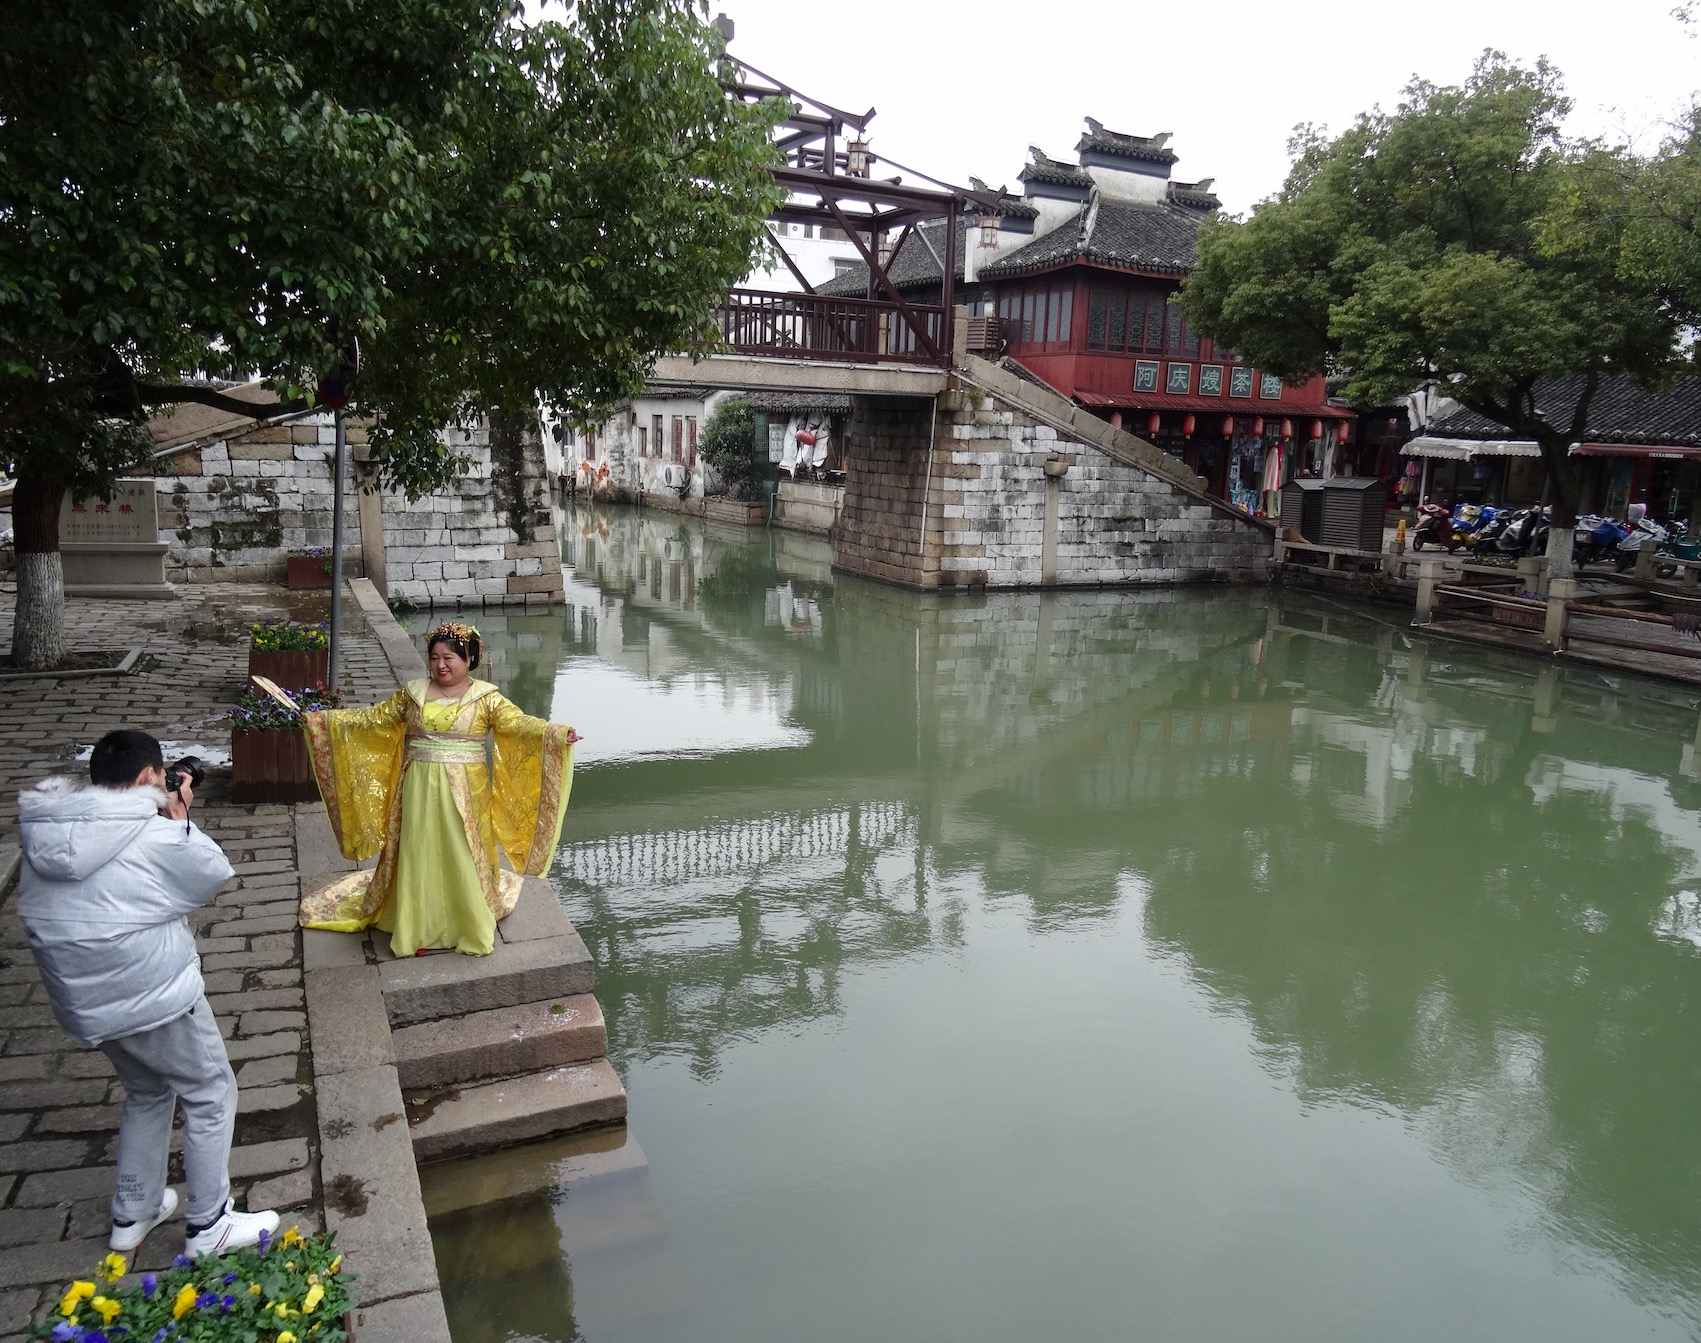 Taiping Bridge Tongli Water Town Suzhou China